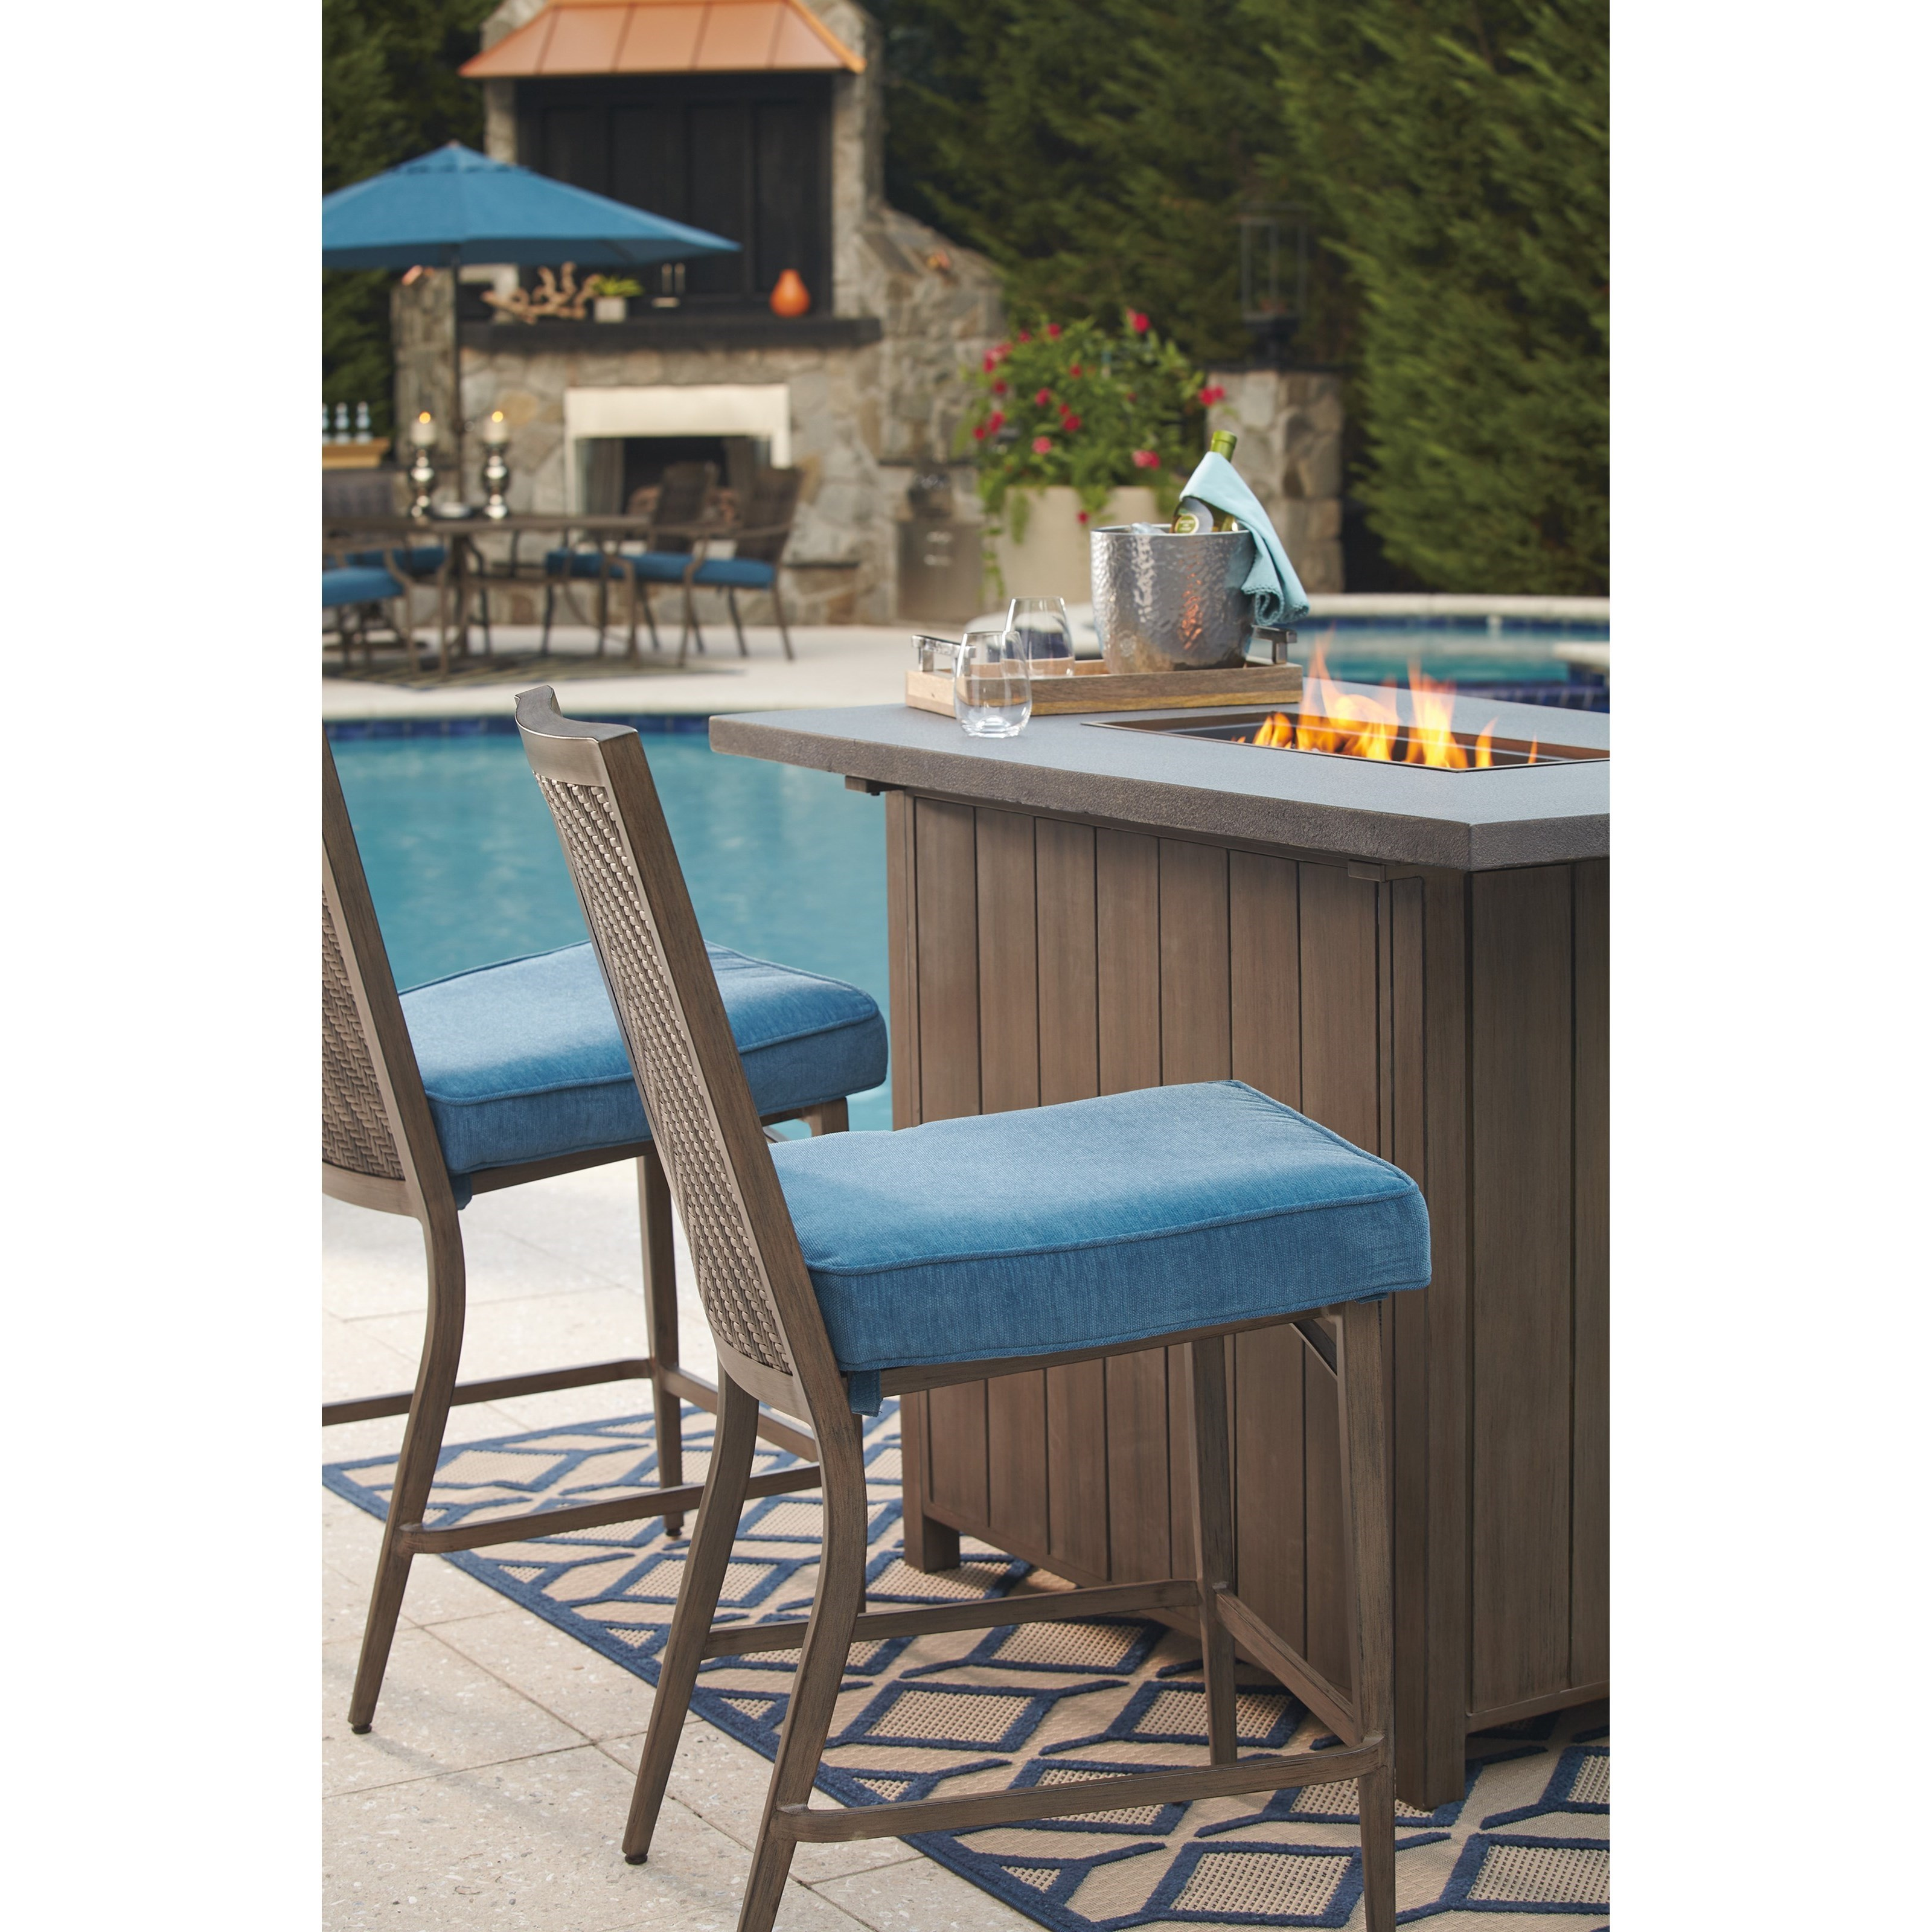 partanna p556130 set of 4 outdoor barstools with cushion by signature design by ashley